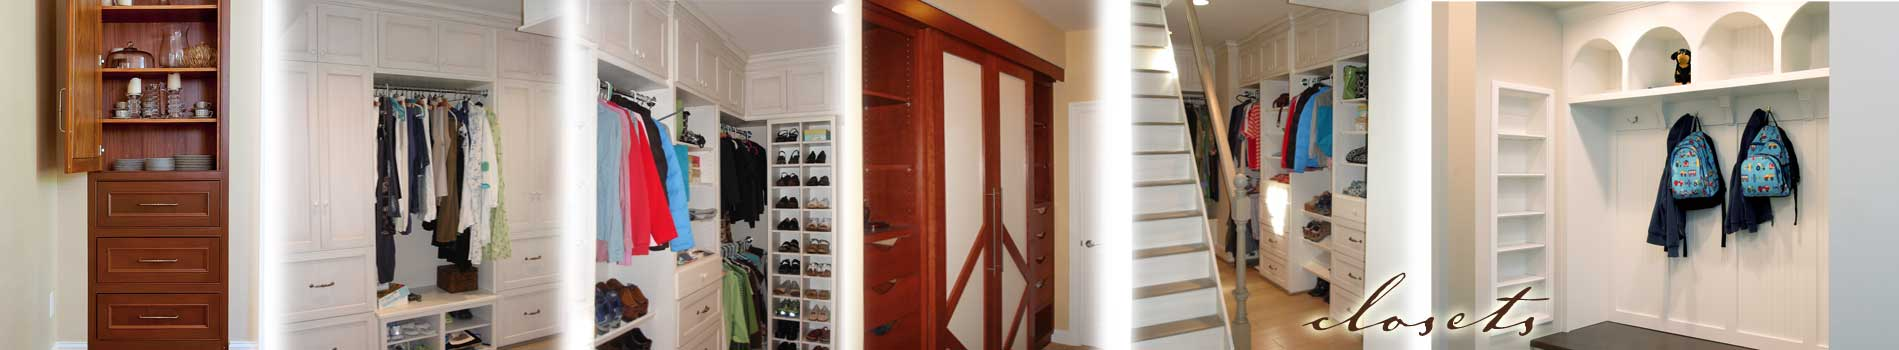 CreativeCabinets-Sliders-closets